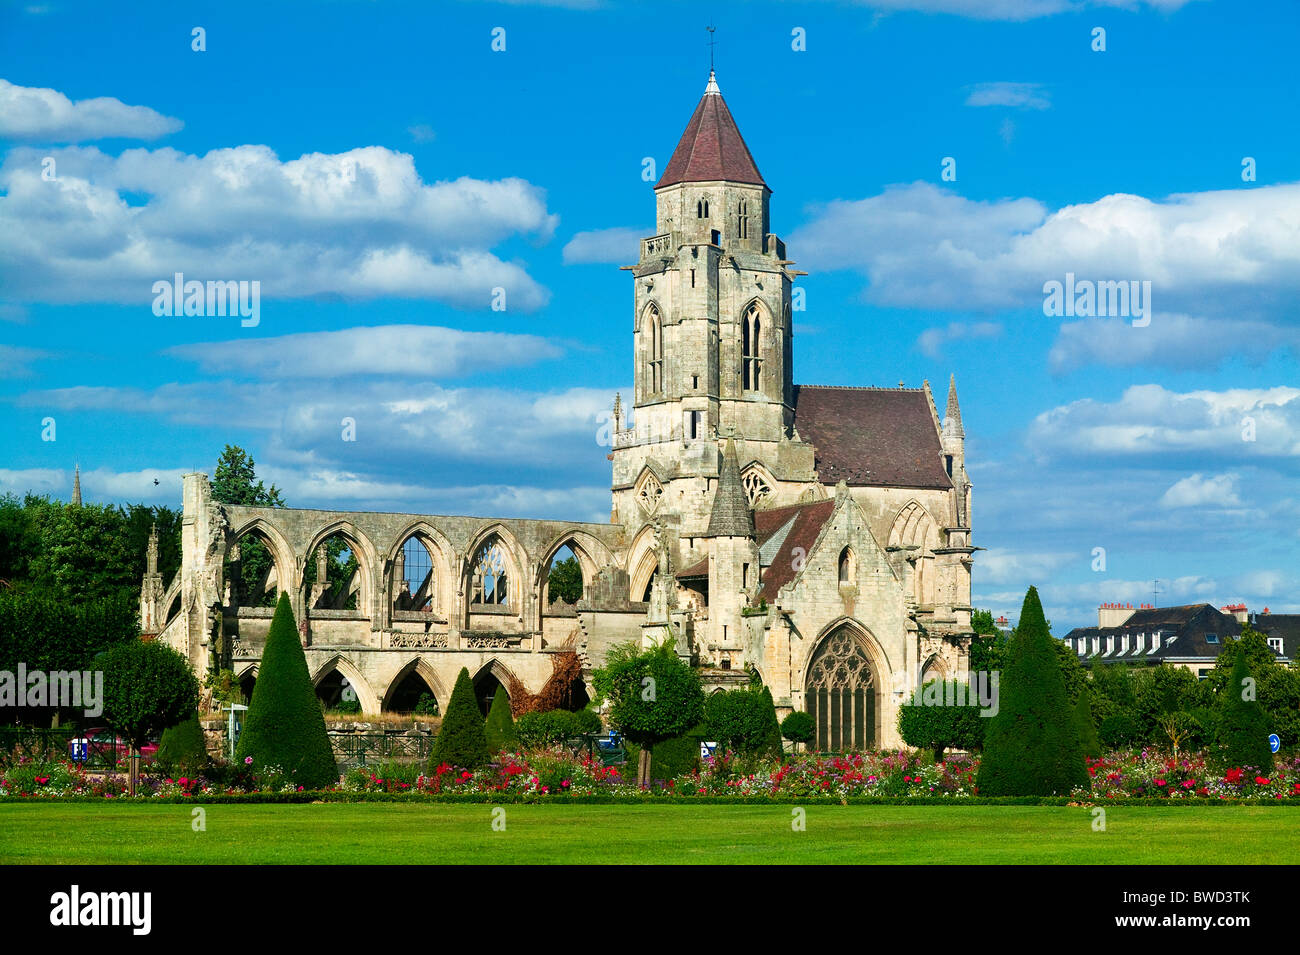 eglise saint etienne le vieux caen calvados basse normandie stock photo royalty free image. Black Bedroom Furniture Sets. Home Design Ideas